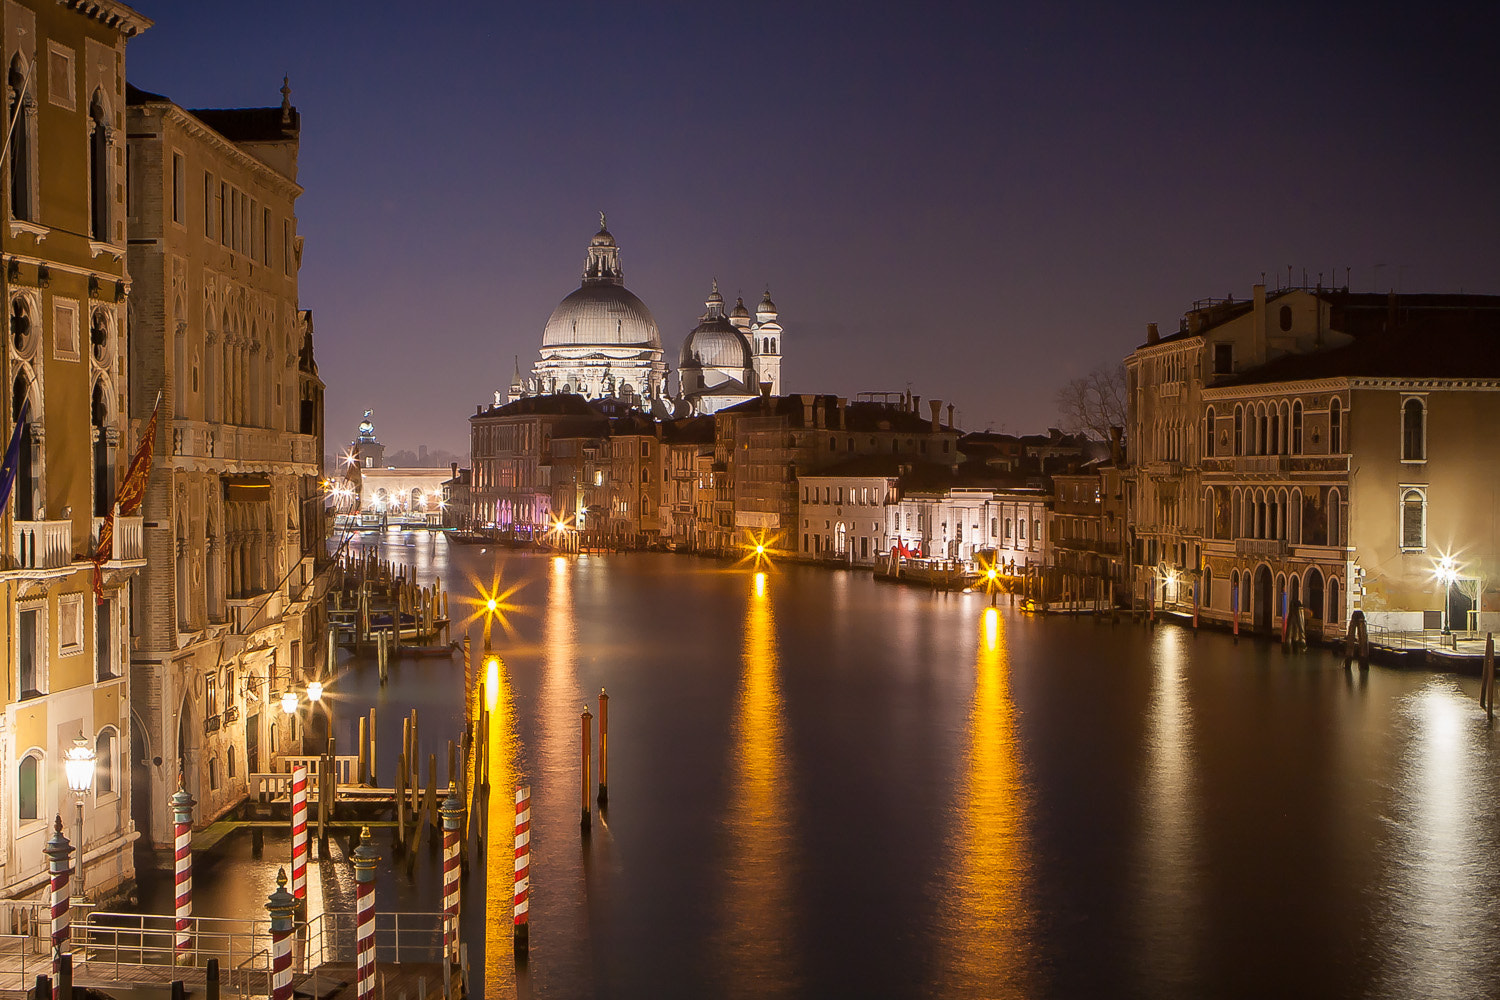 Photograph 75 Seconds in Venice by Michael Backes on 500px